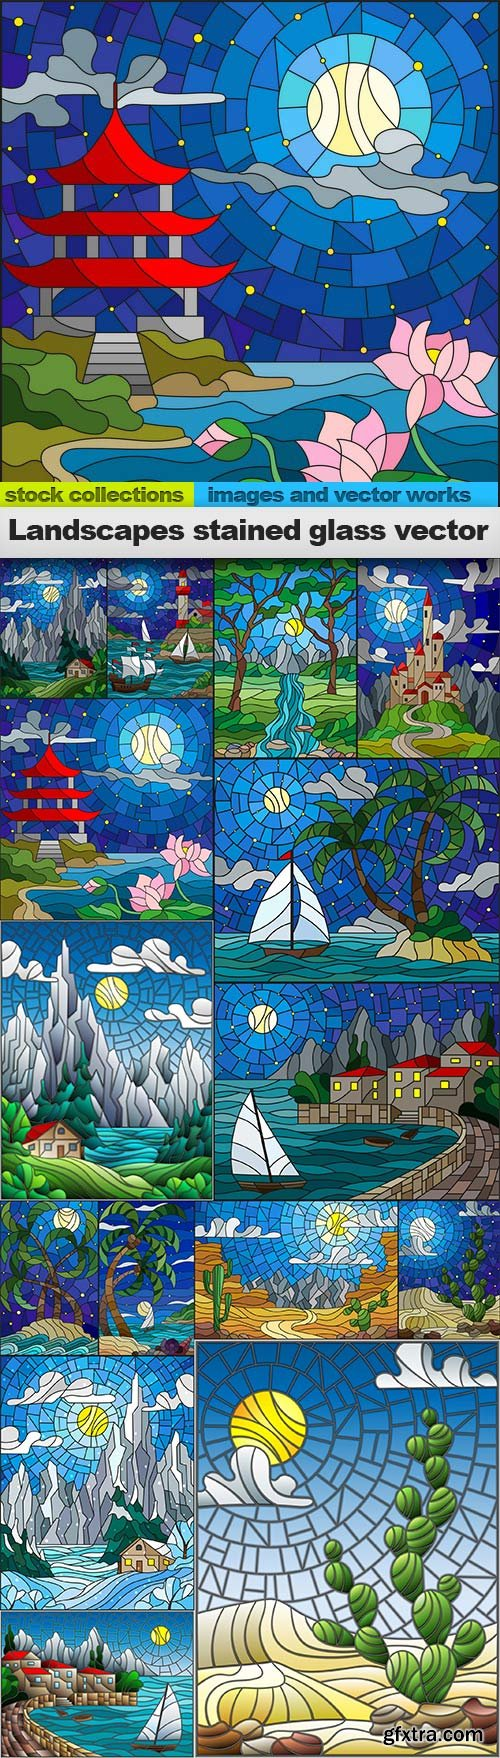 Landscapes stained glass vector, 15 x EPS